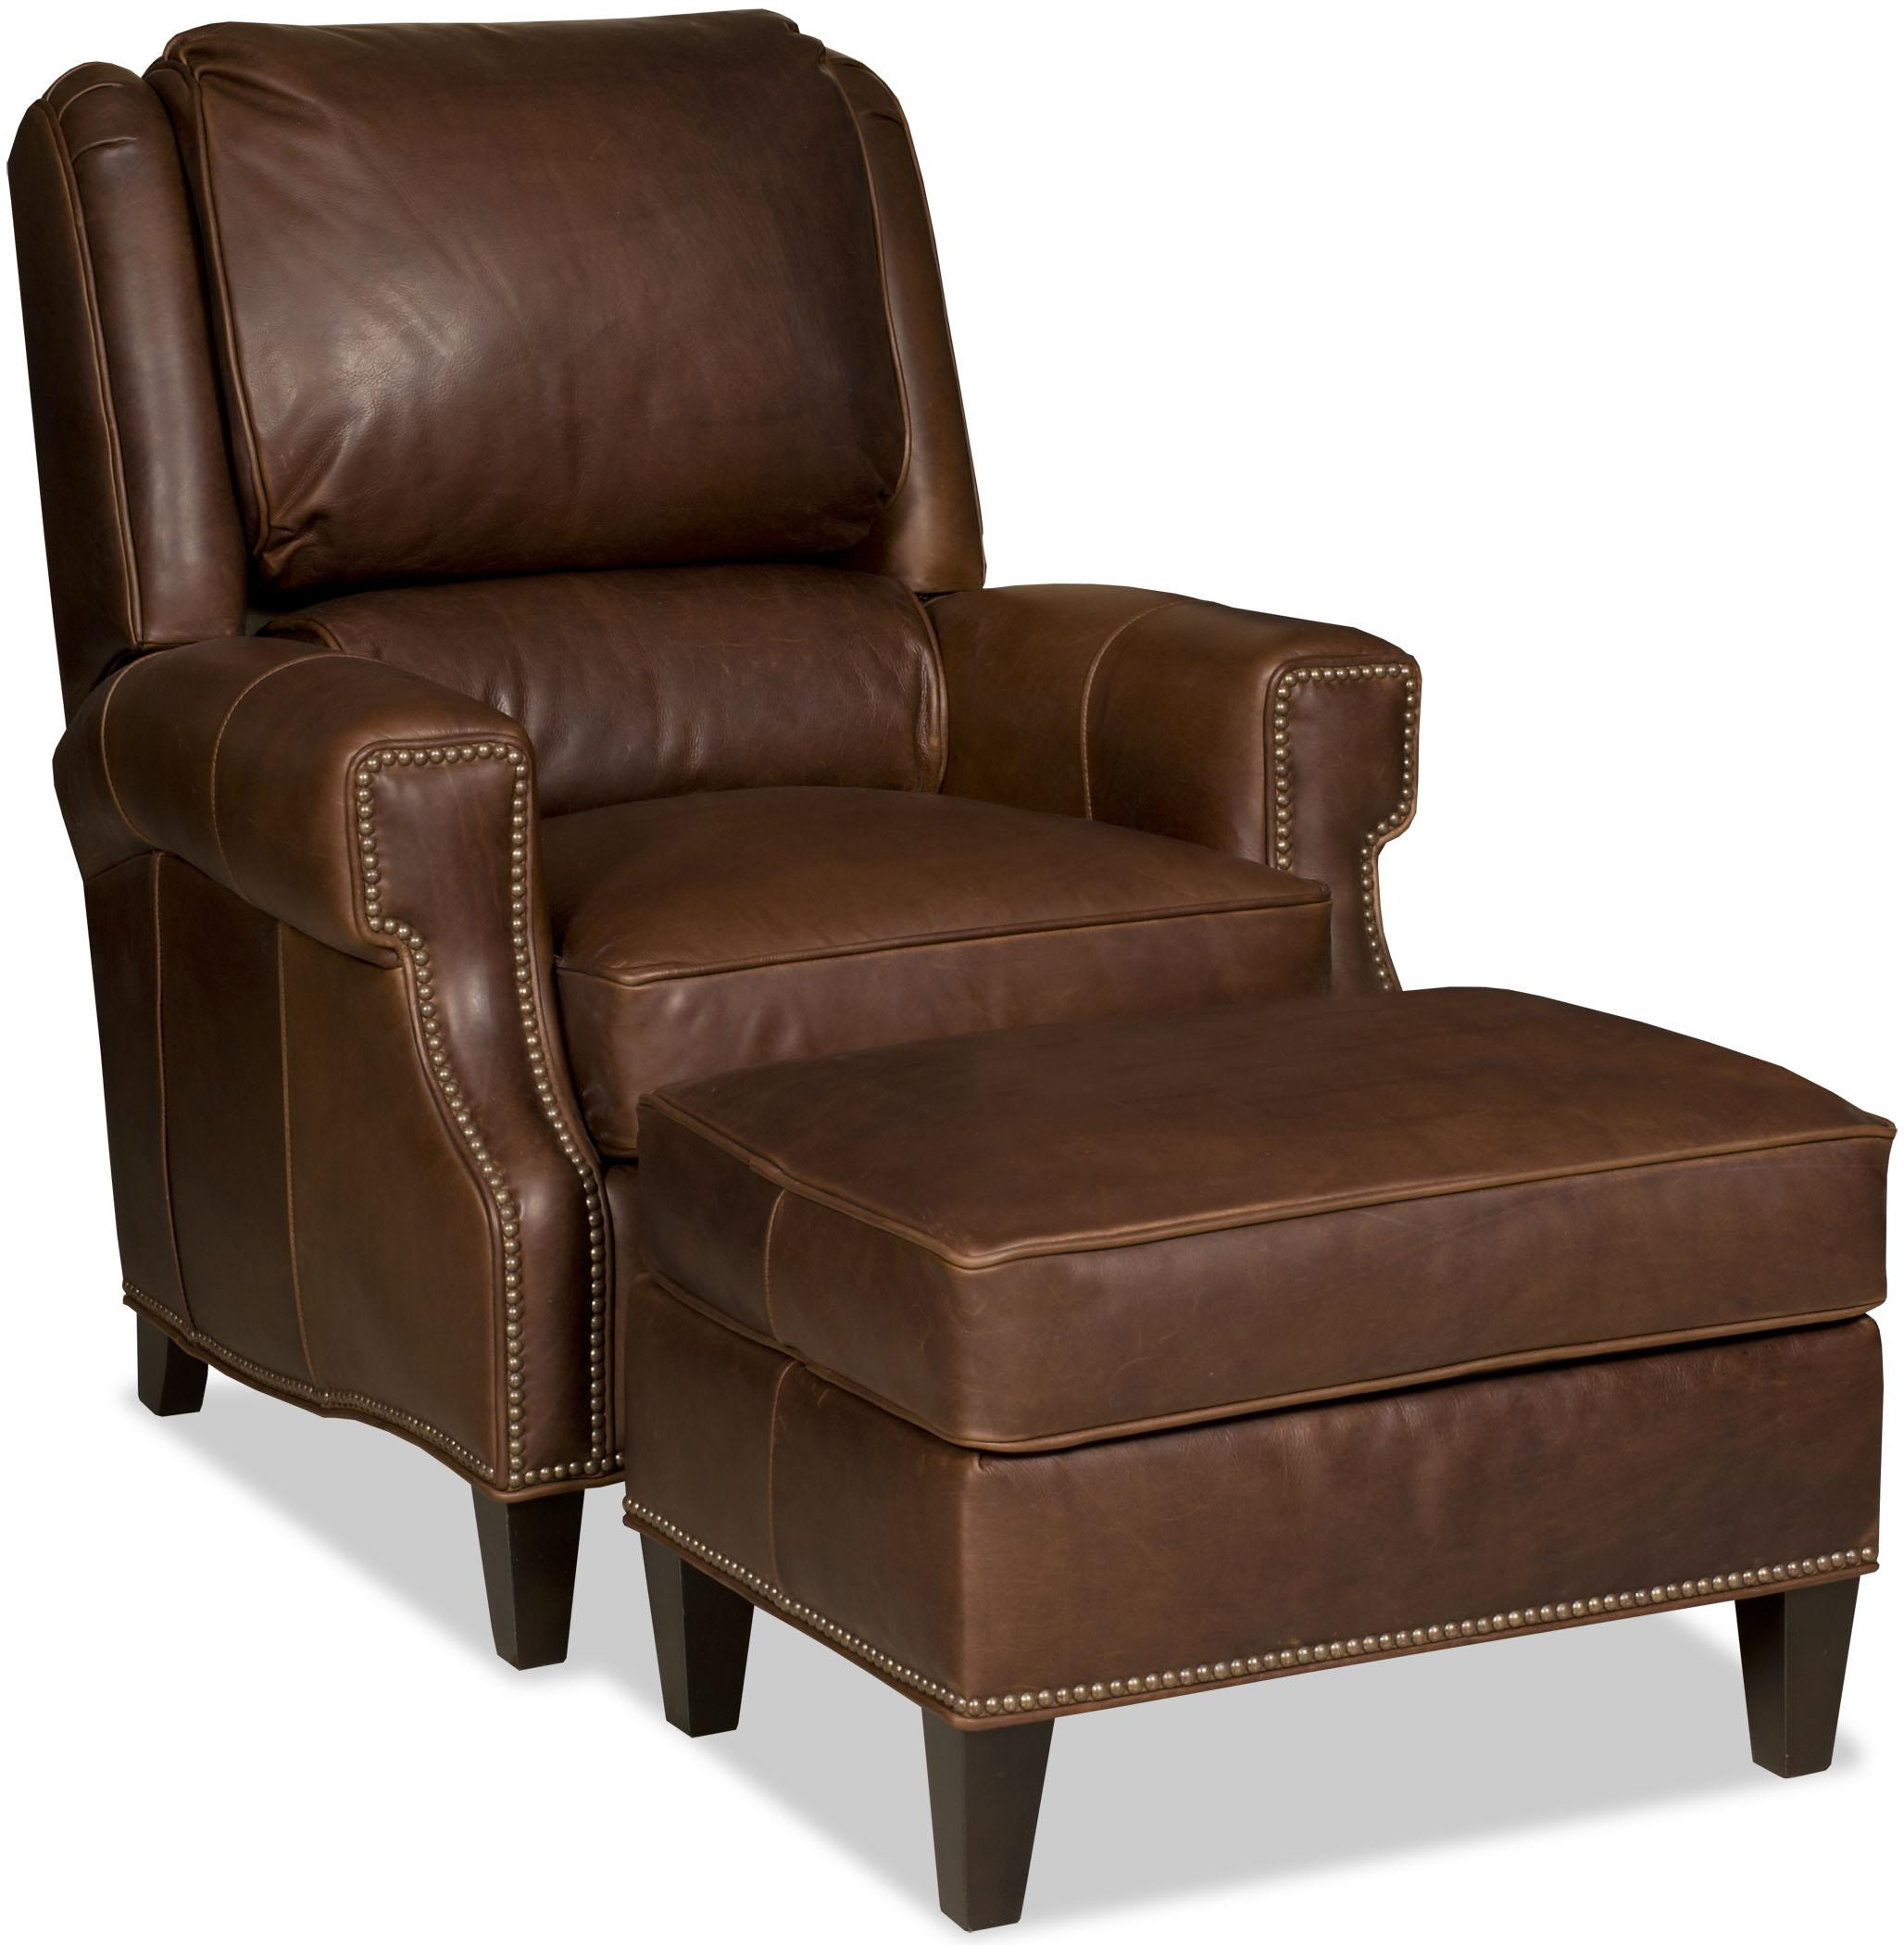 Bradington Young Milo Transitional Reclining Chair And Ottoman Set With Nailheads Jacksonville